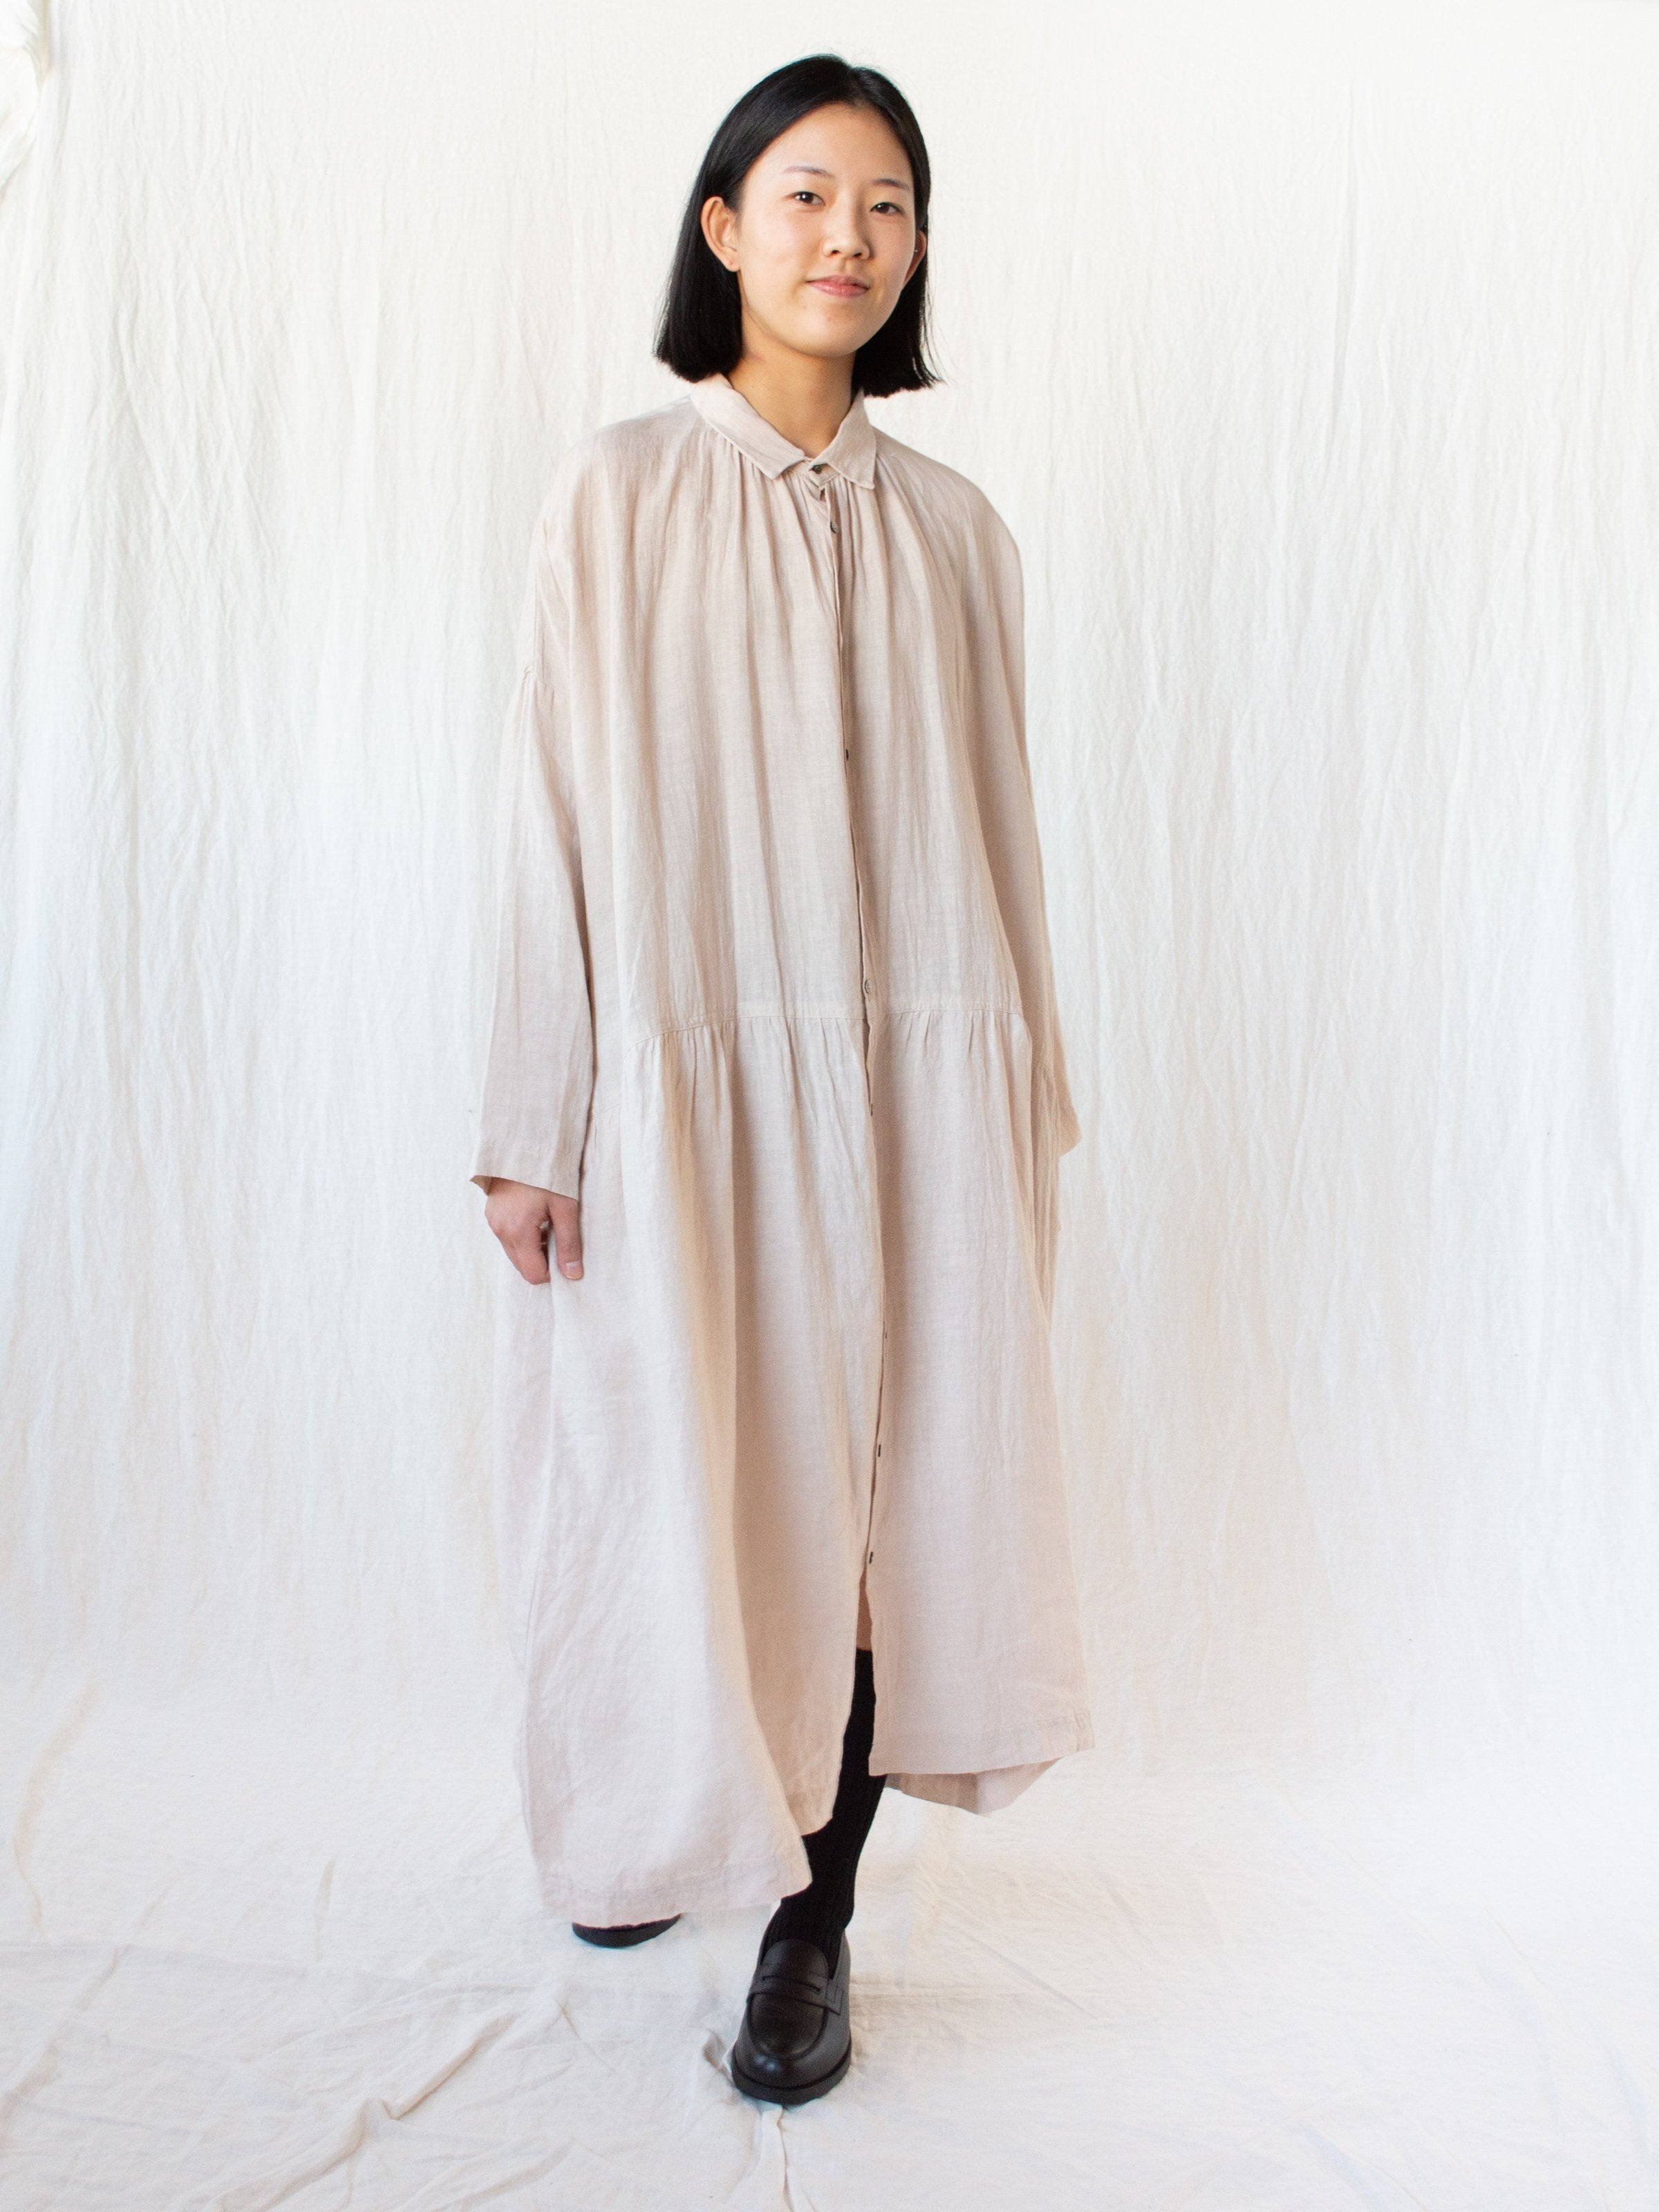 Namu Shop - Ichi Antiquites Linen Gather Dress - Peach